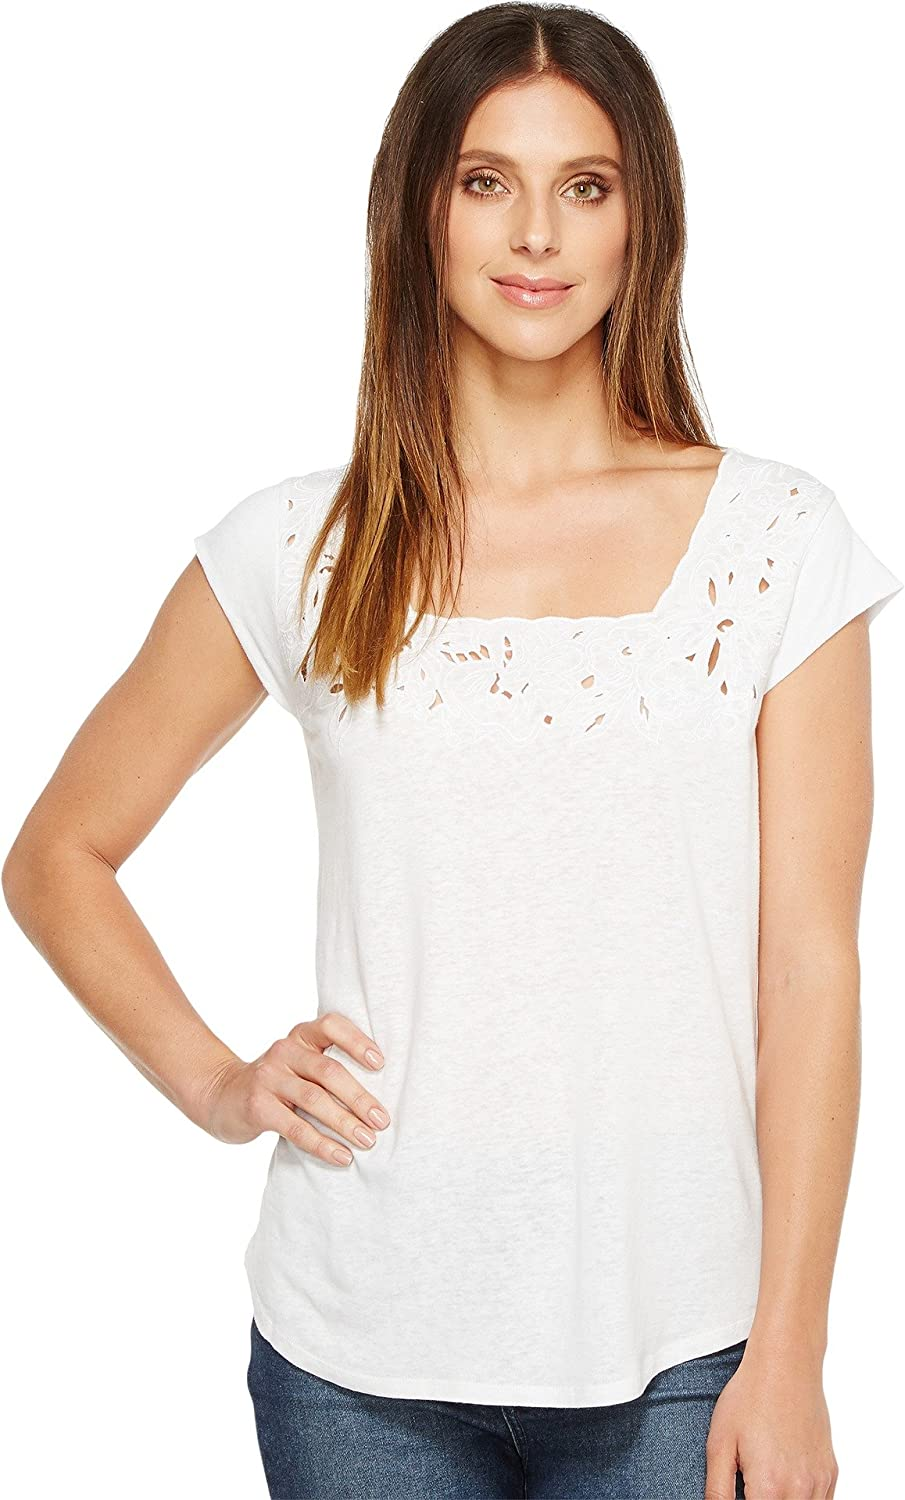 Limited Special Price Popular brand NYDJ Women's Cut Knit Tee Out